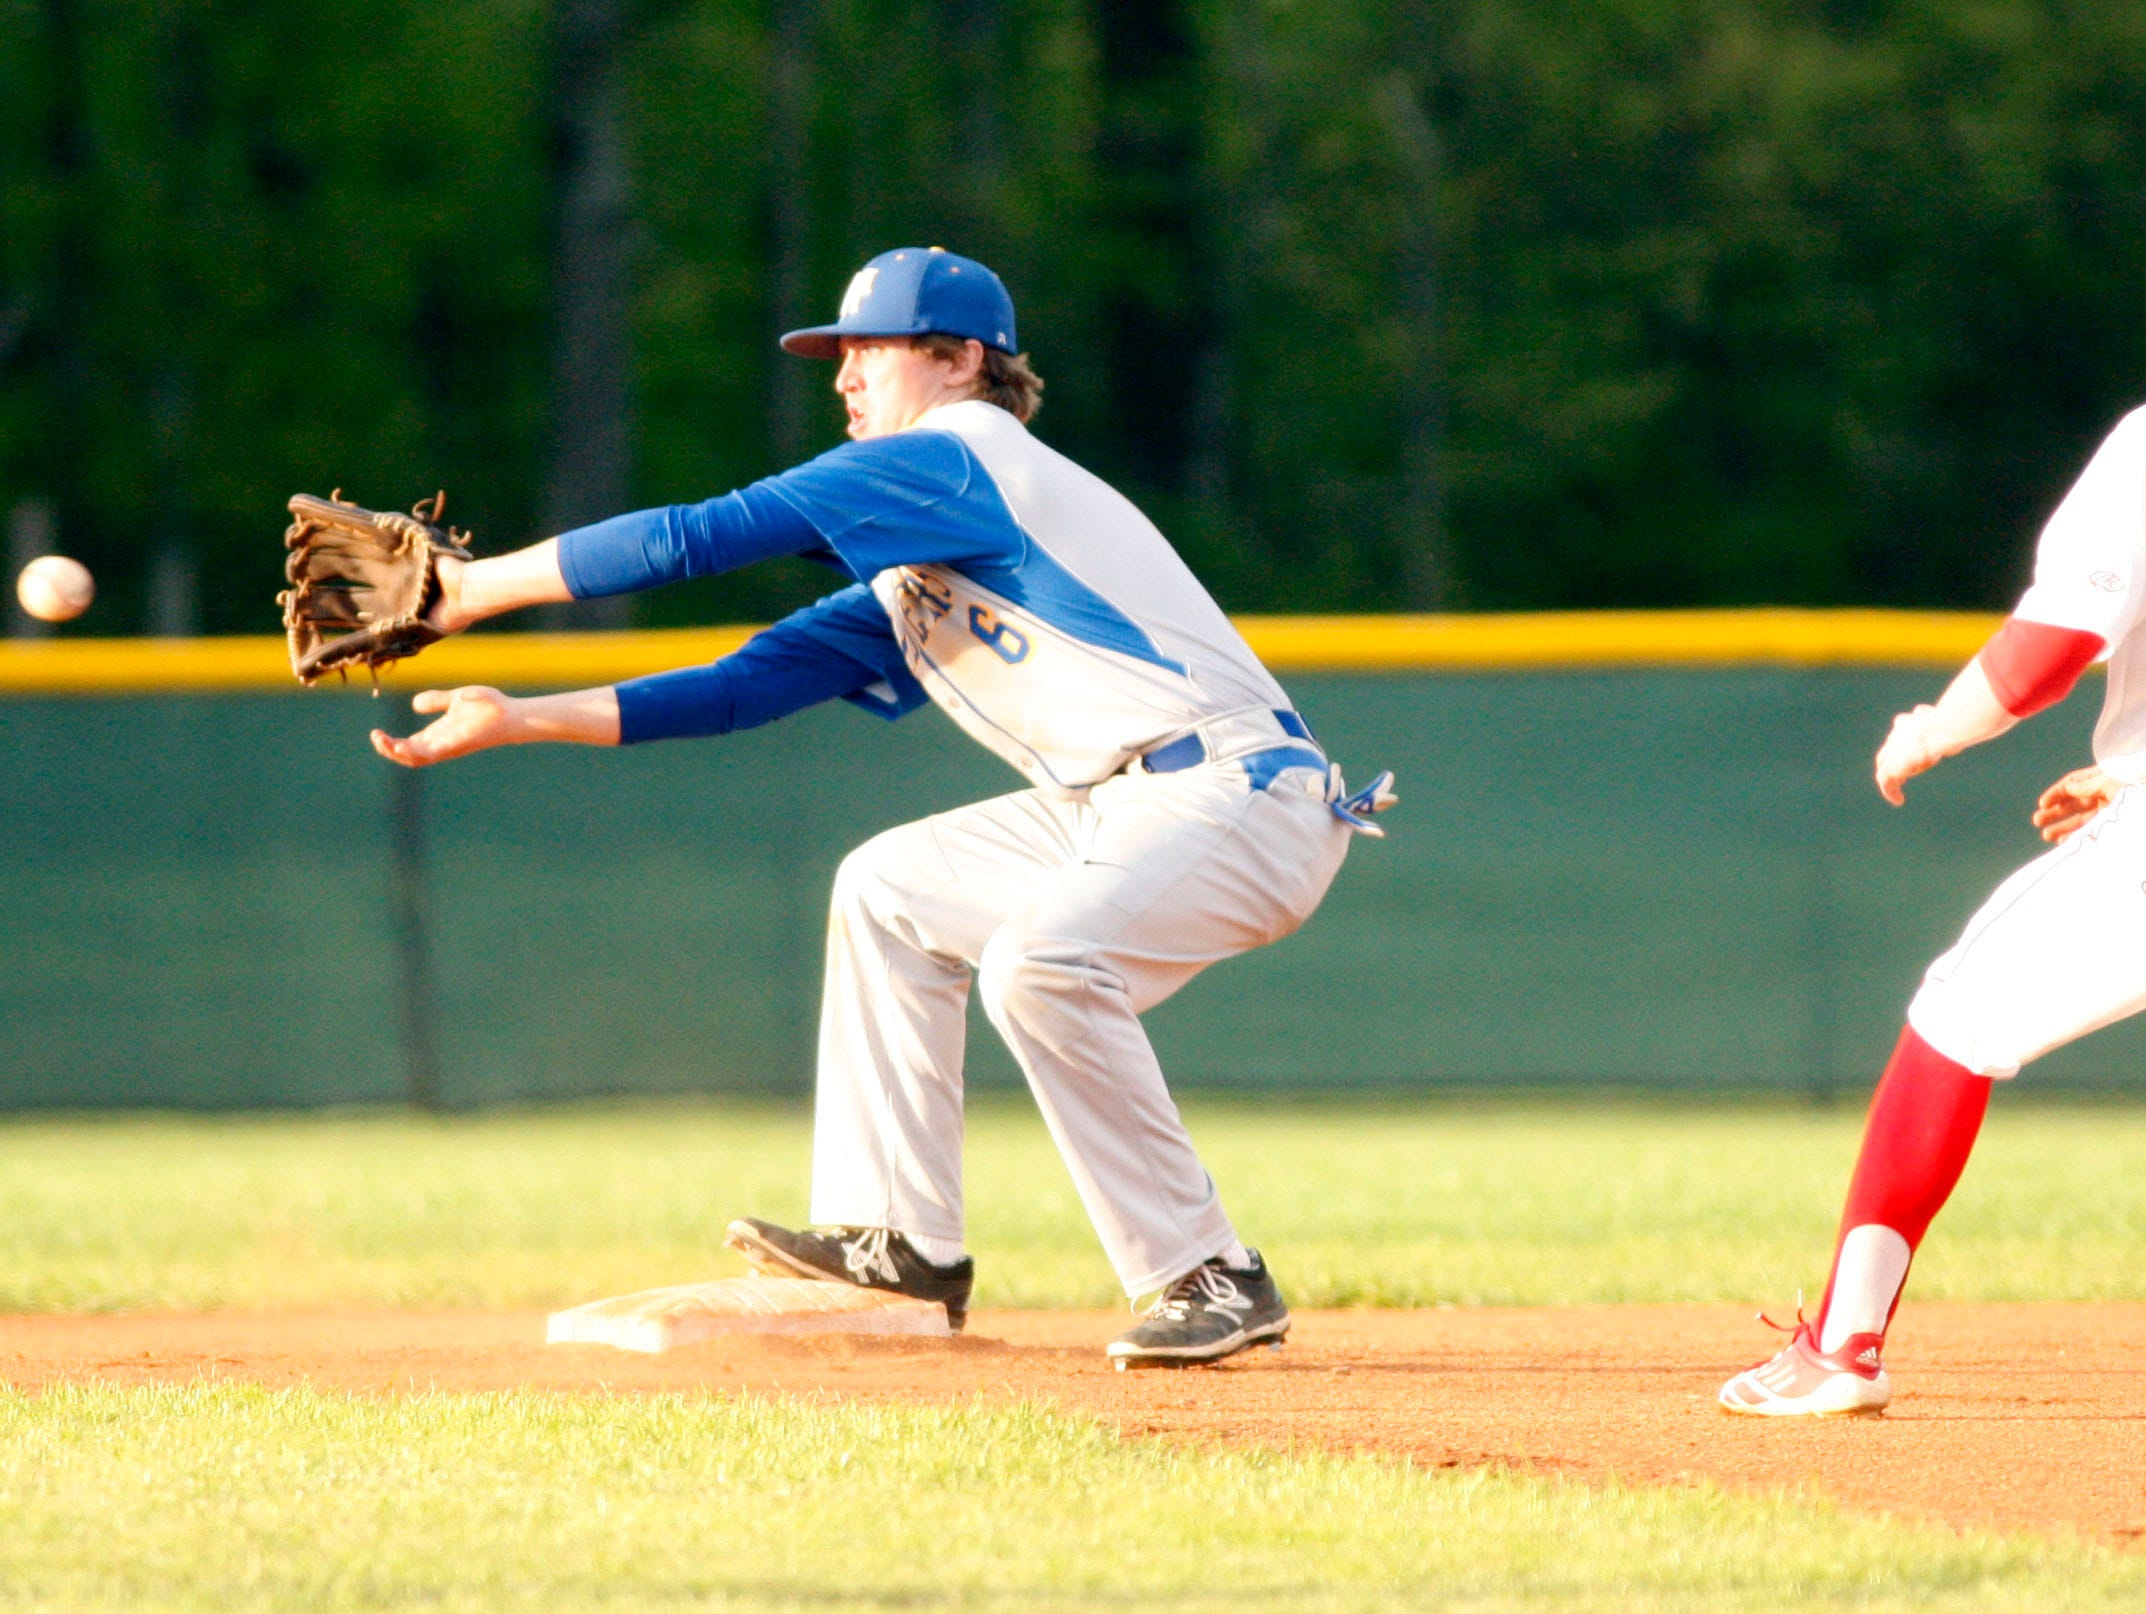 Mountain Home second baseman Zane Walker takes a throw as Cabot's Dylan Bowers slides into second base.